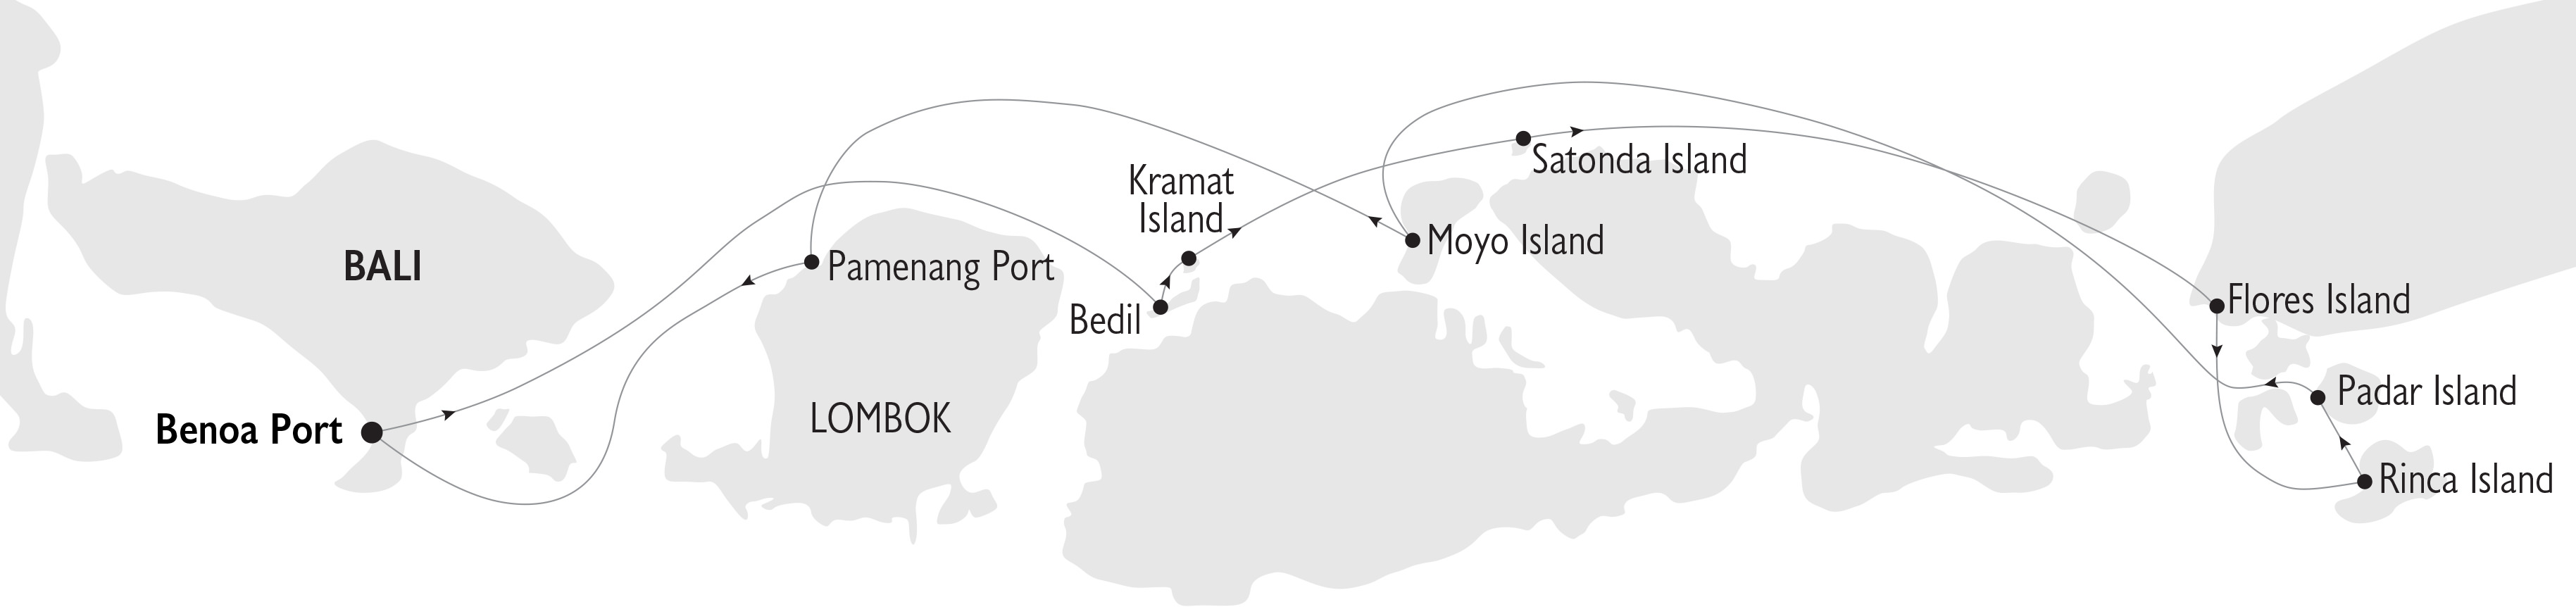 Indonesia Cruise Map